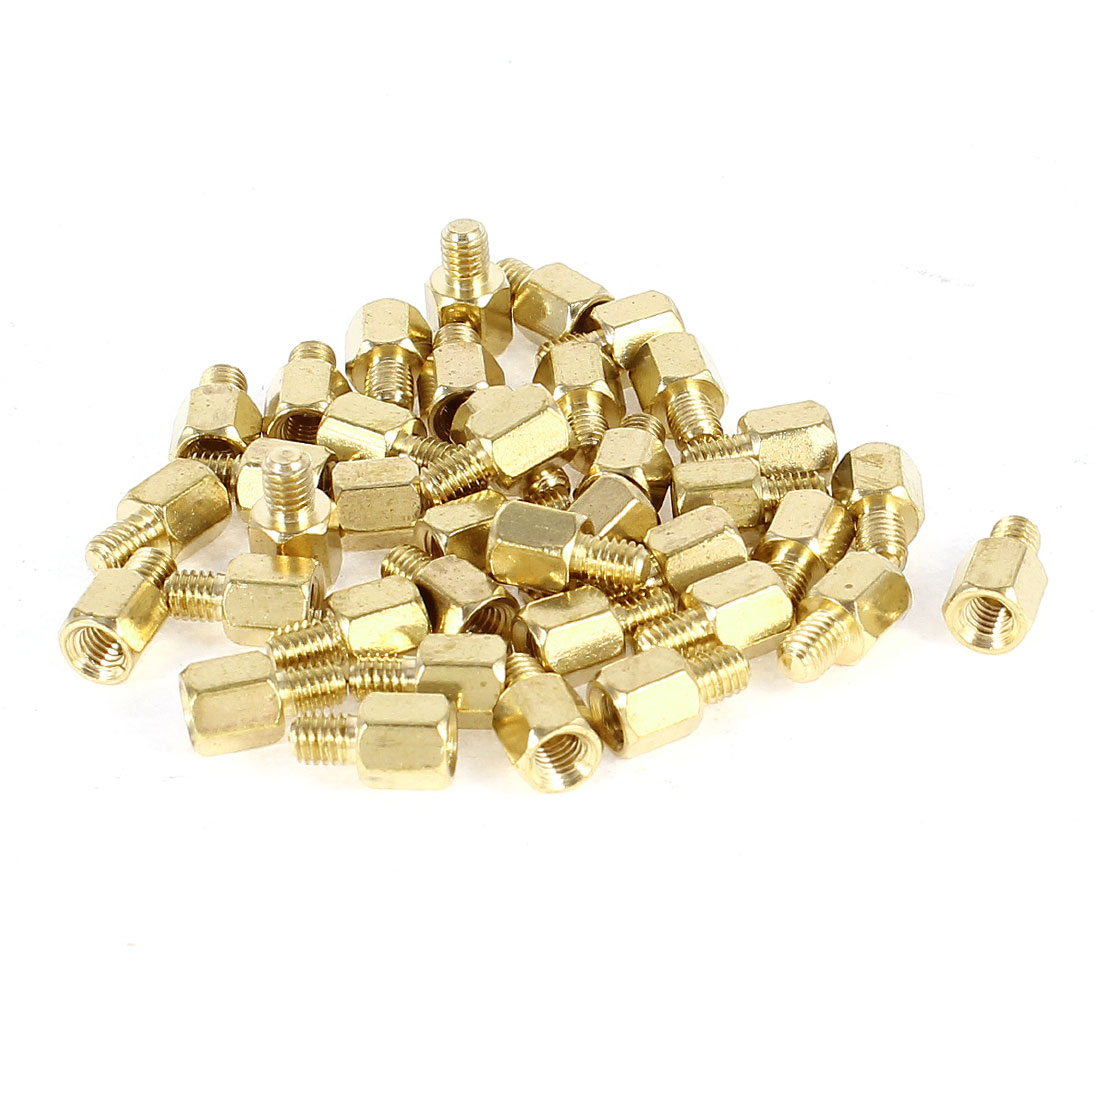 38 Pcs PC PCB Motherboard Brass Standoff Hexagonal Spacer M3 5+4mm